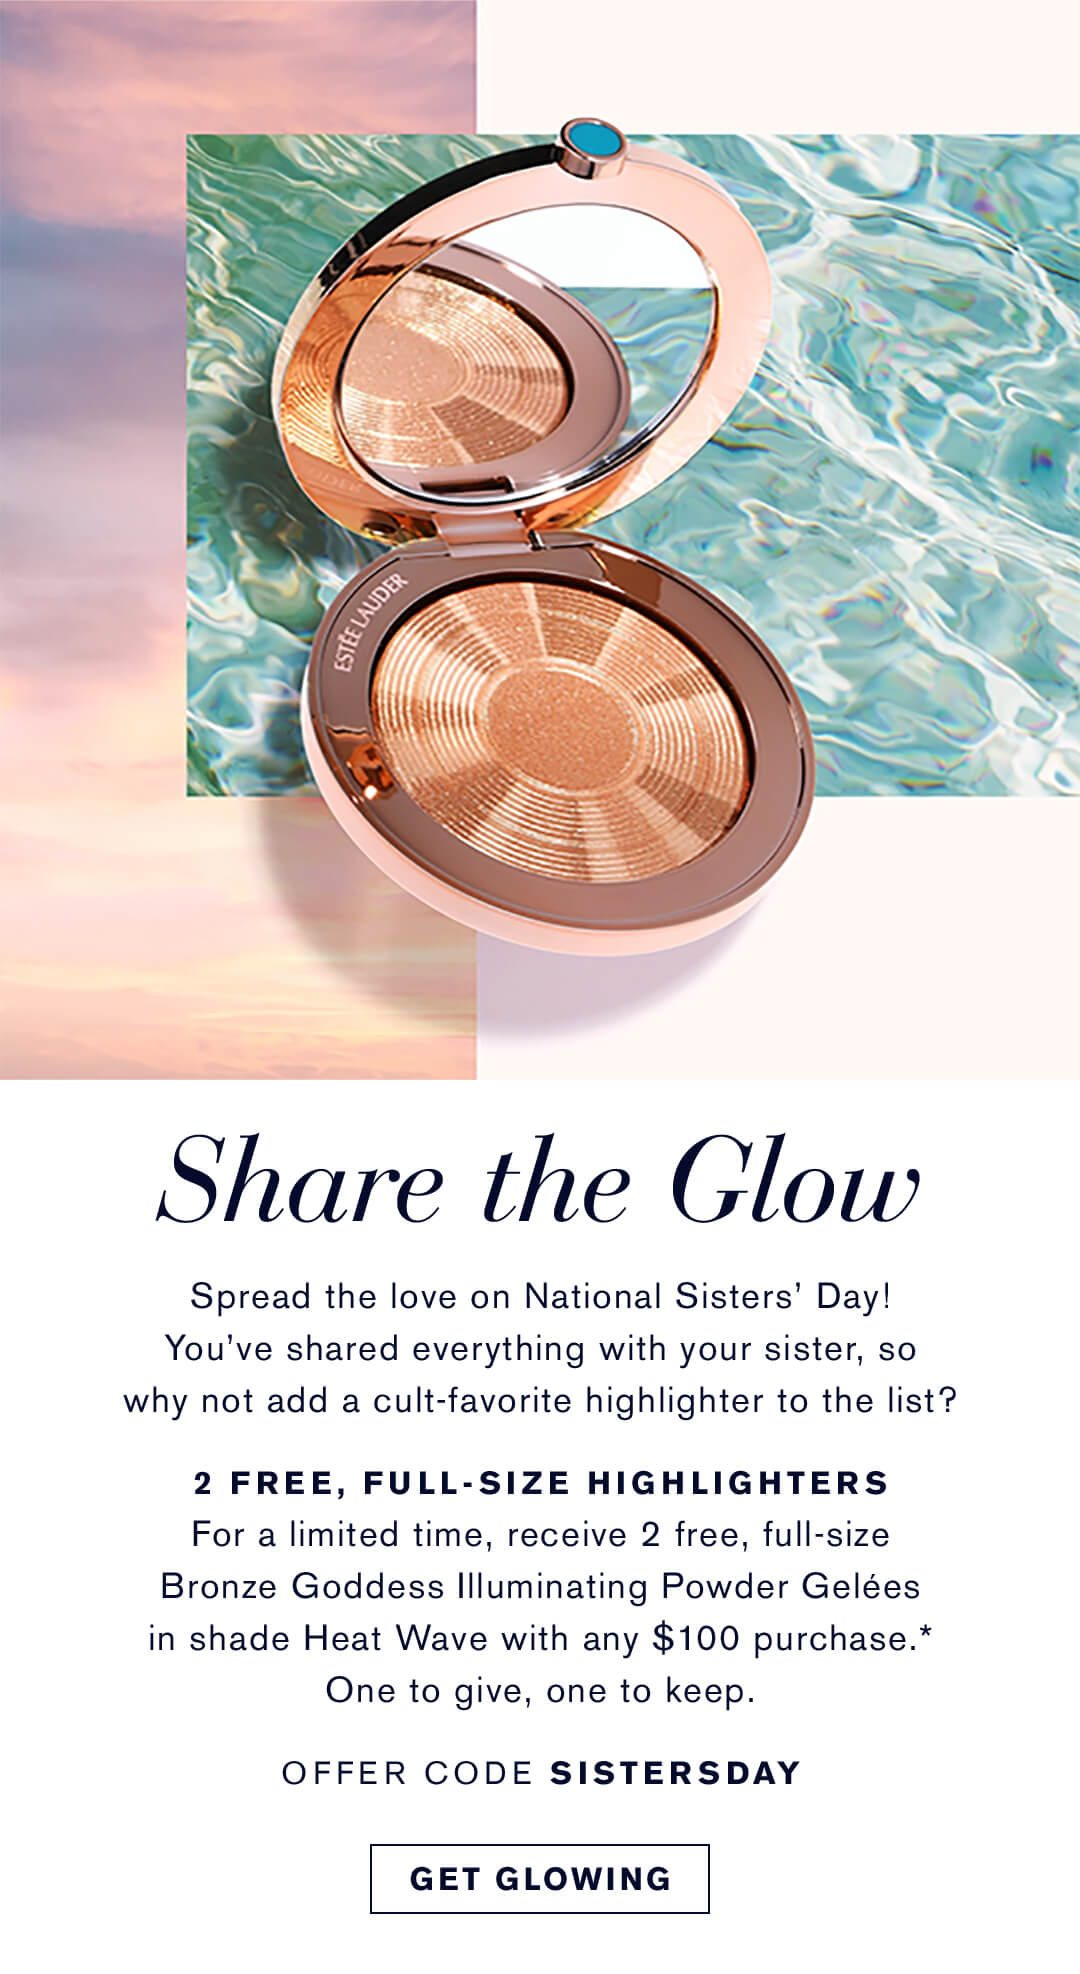 Share the Glow | 2 Free, Full-Size Highlighters | Offer Code SISTERSDAY